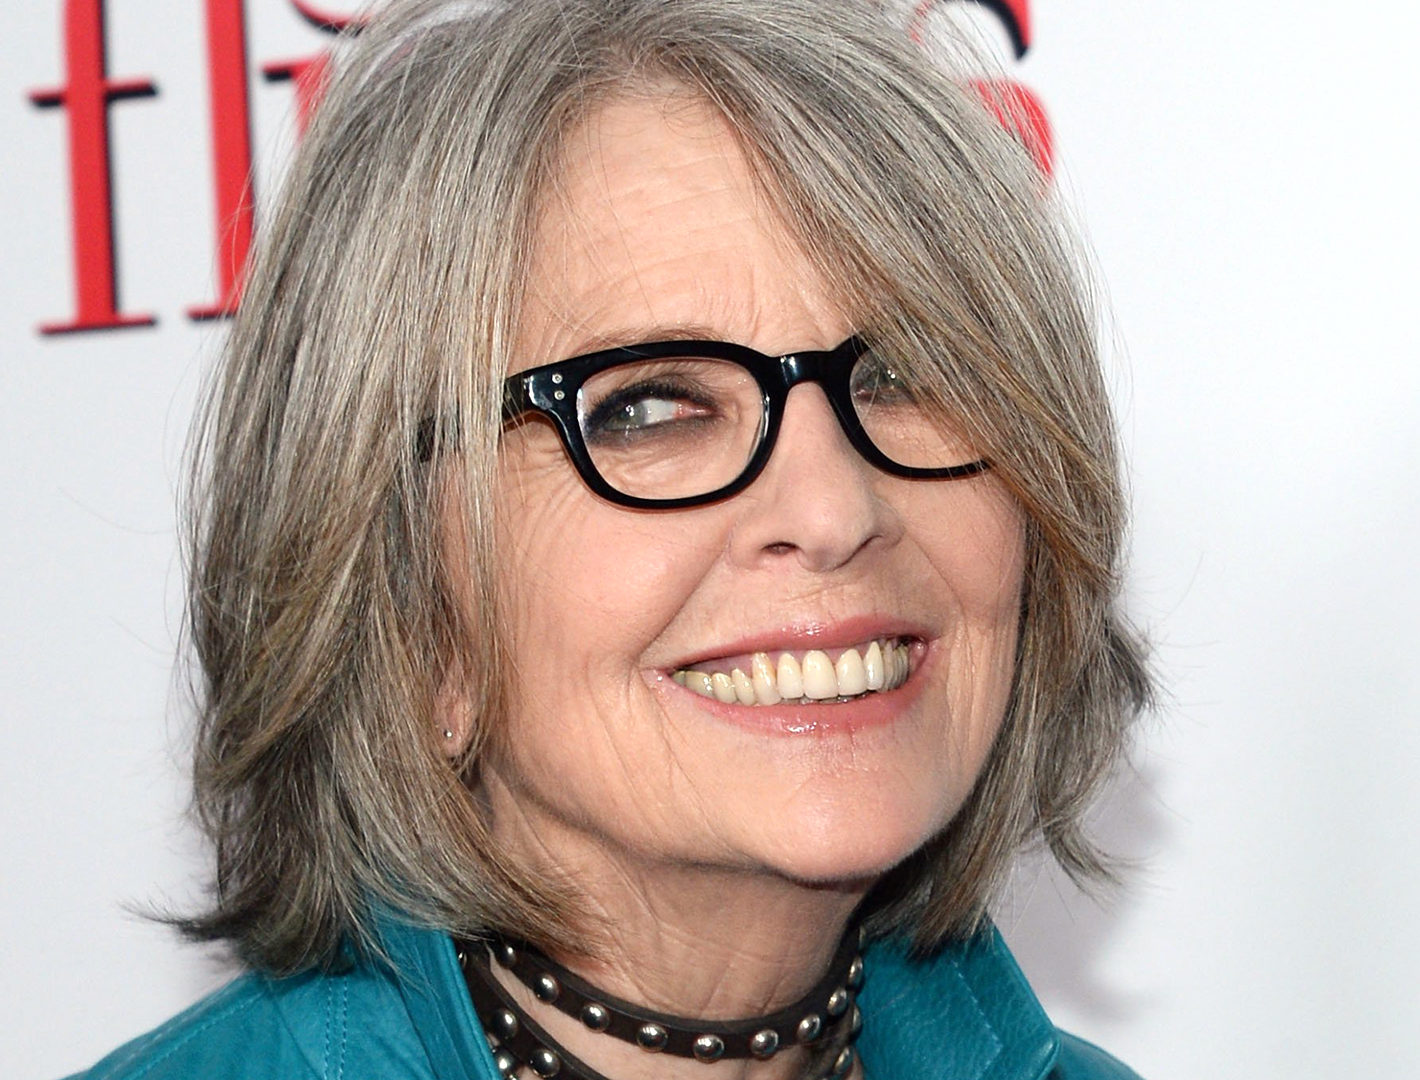 """NEW YORK, NY - APRIL 30: Actress Diane Keaton attends the """"5 Flights Up"""" New York premiere at BAM Rose Cinemas on April 30, 2015 in New York City. (Photo by Ben Gabbe/Getty Images)"""